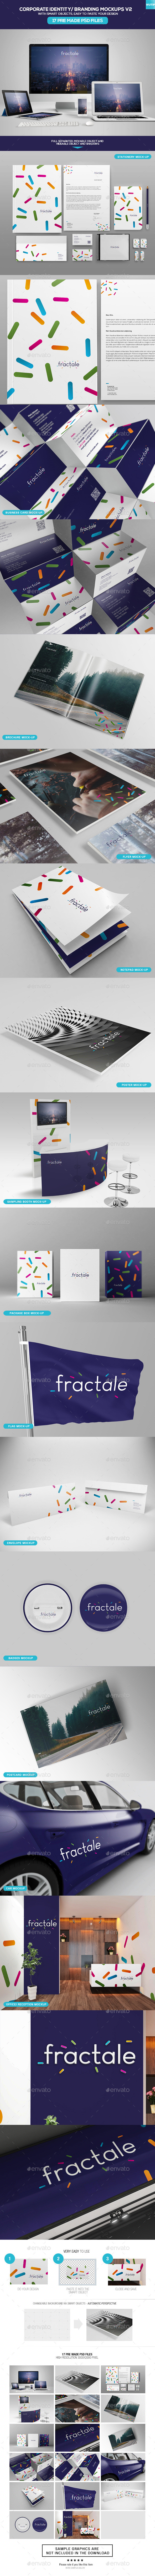 Corporate Identity - Branding Mockups V2 - Stationery Print